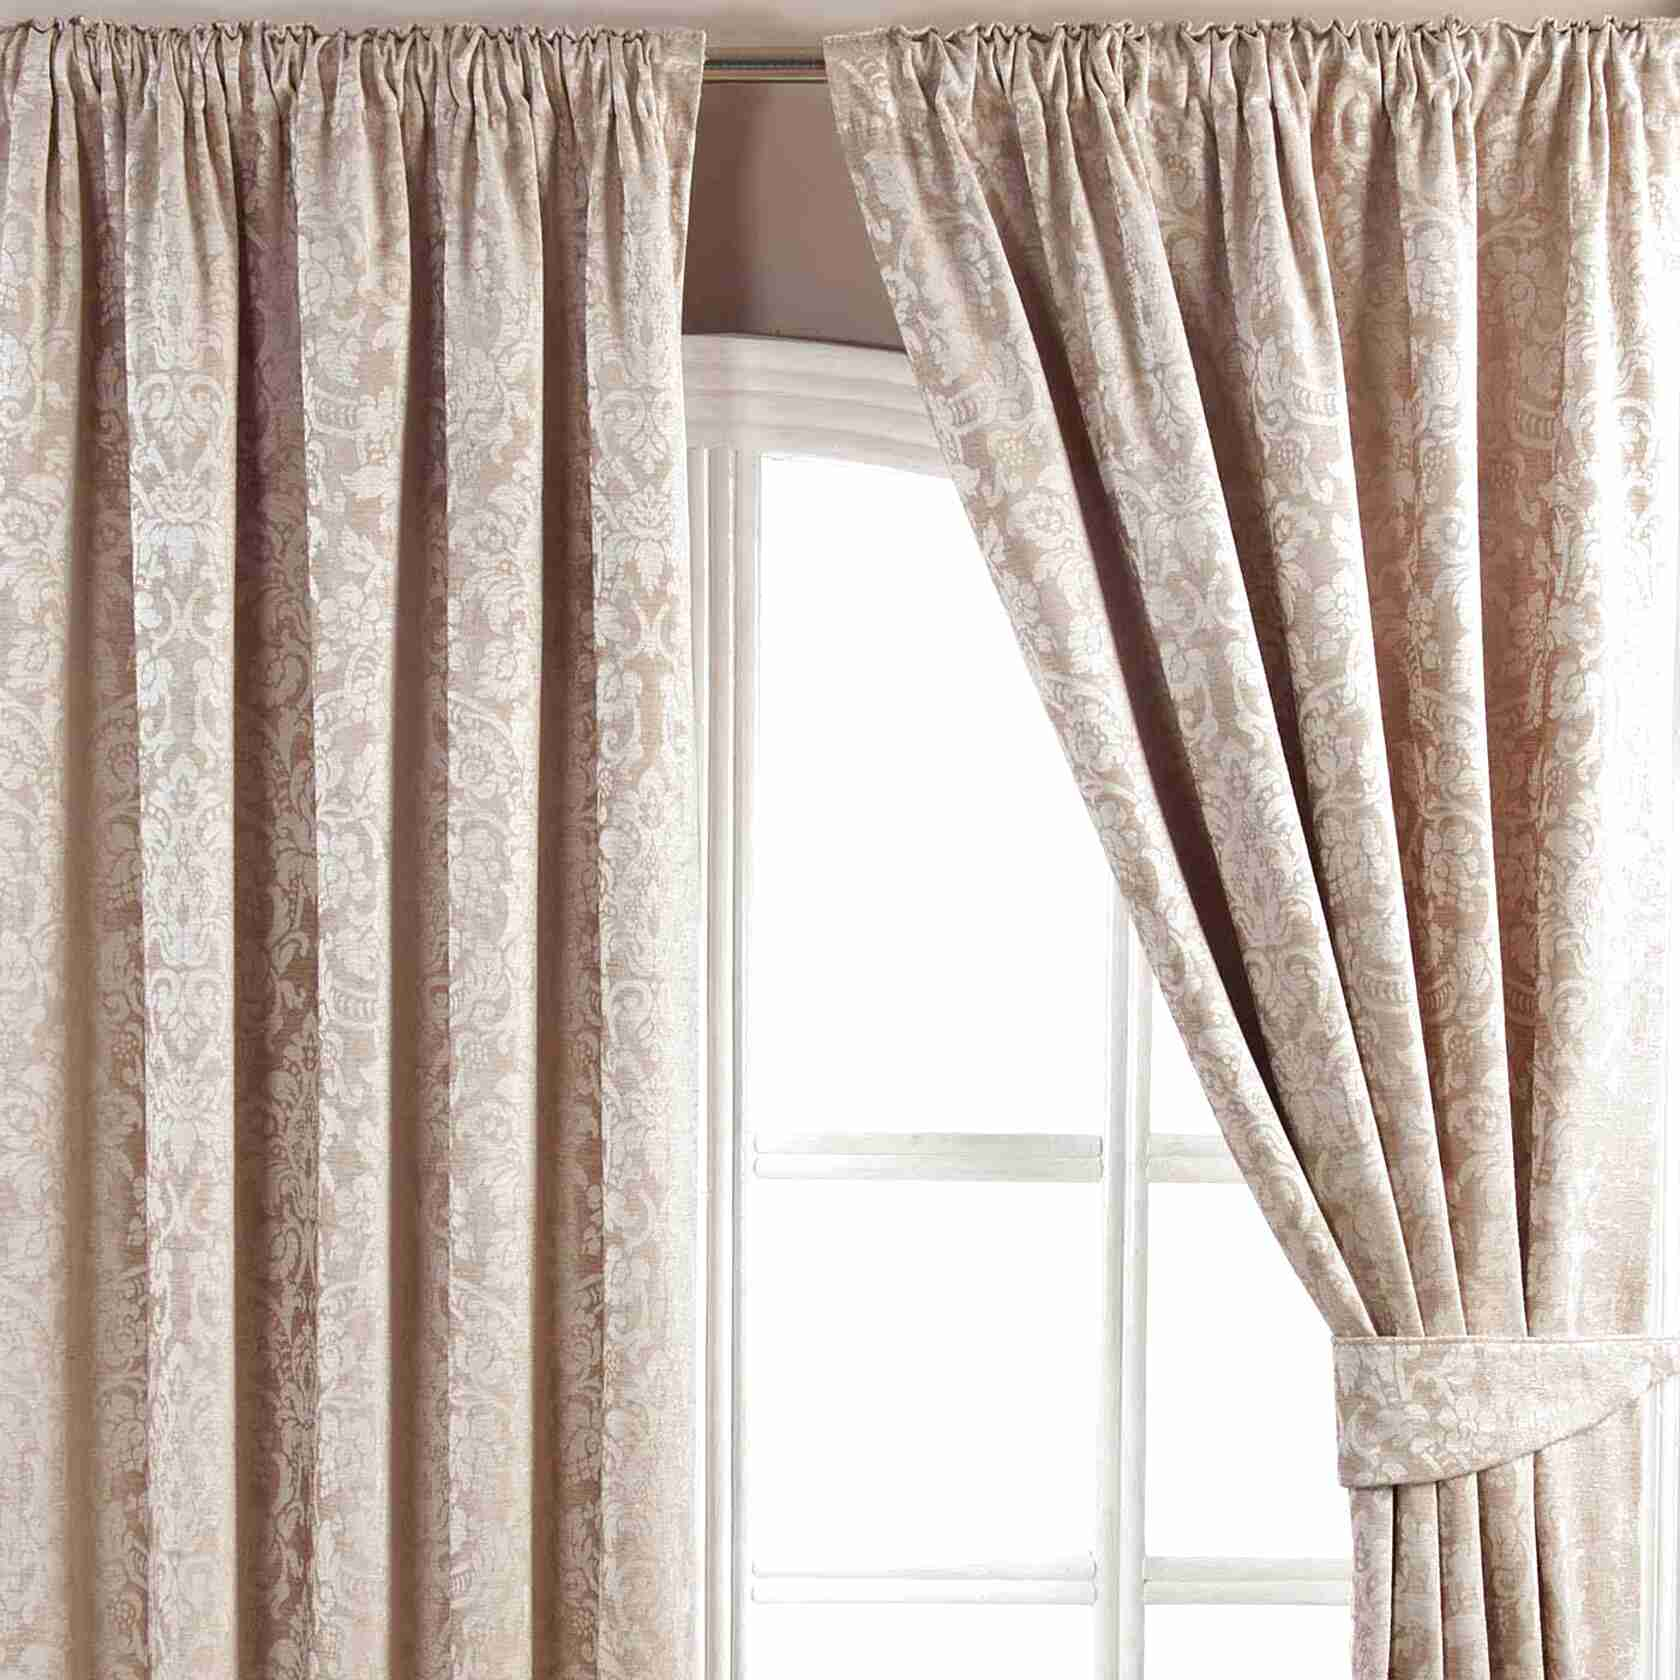 Jacquard Pencil Pleat Curtains For Sale In UK